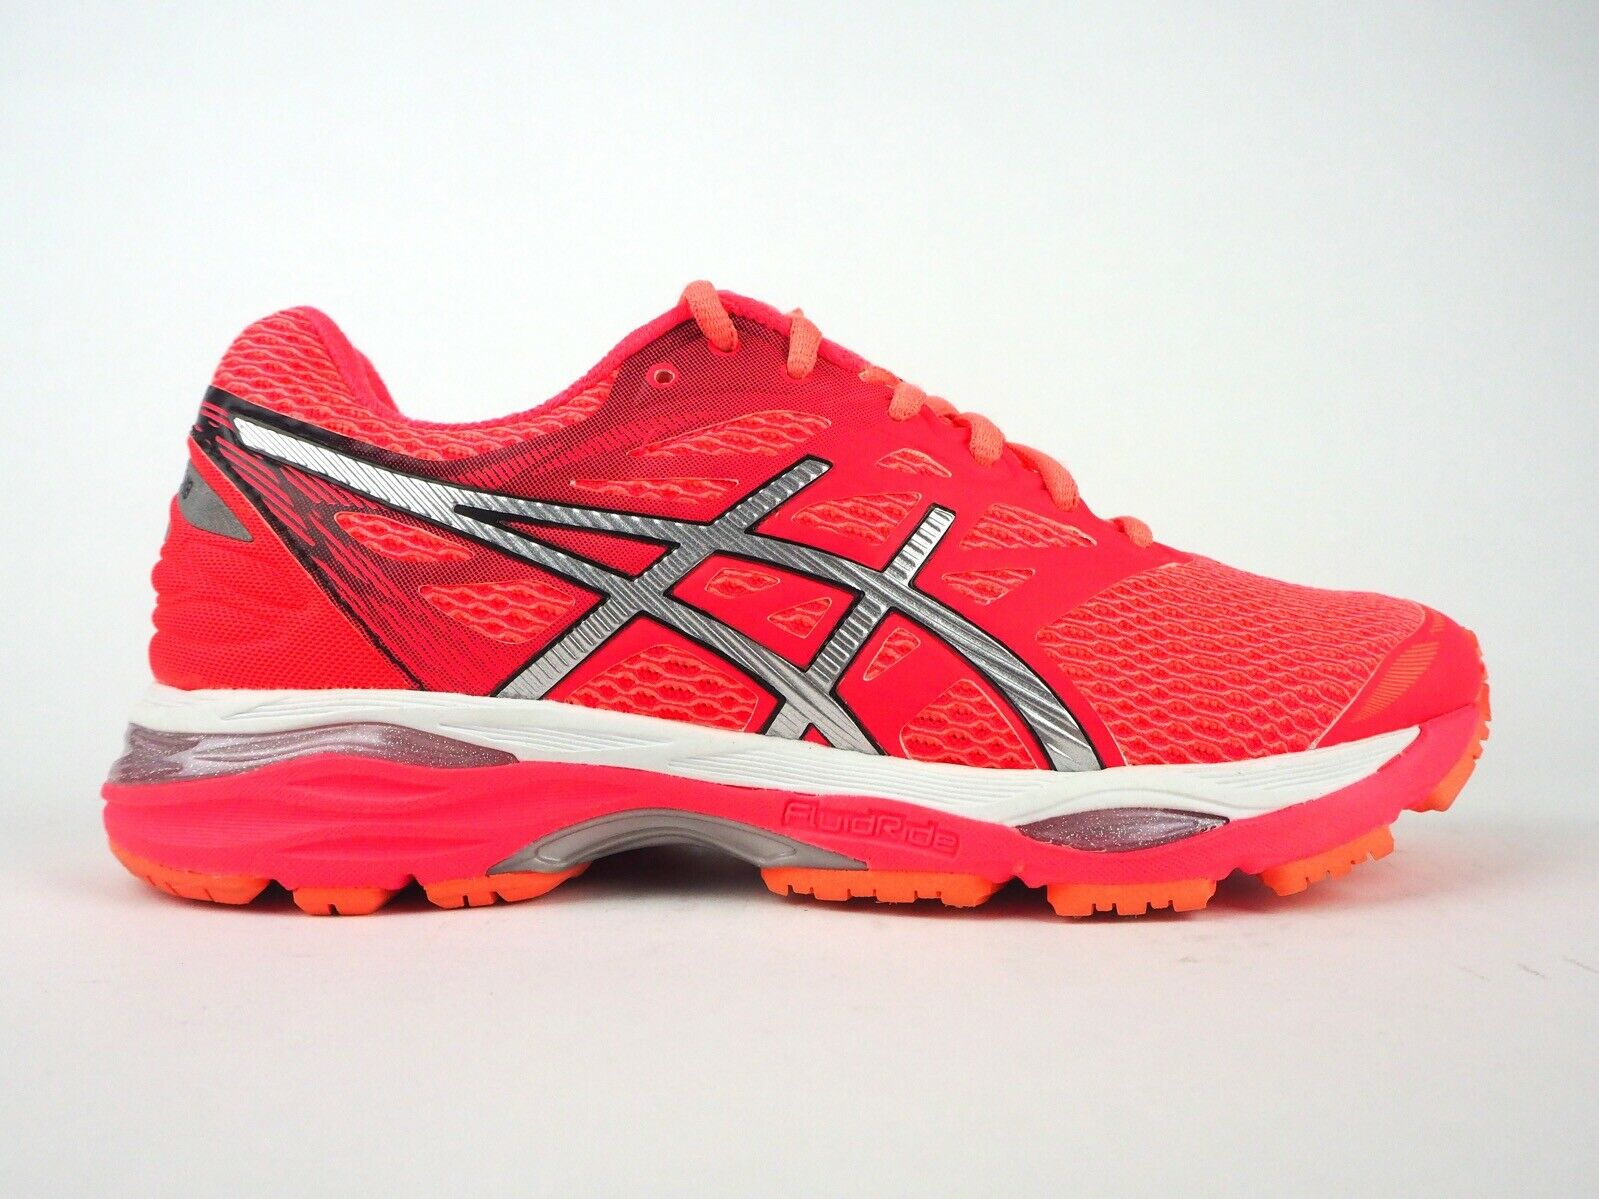 damen Asics Gel Pulse 9 T7D8N 9006 Flash Coral Lace Up Running schuhe